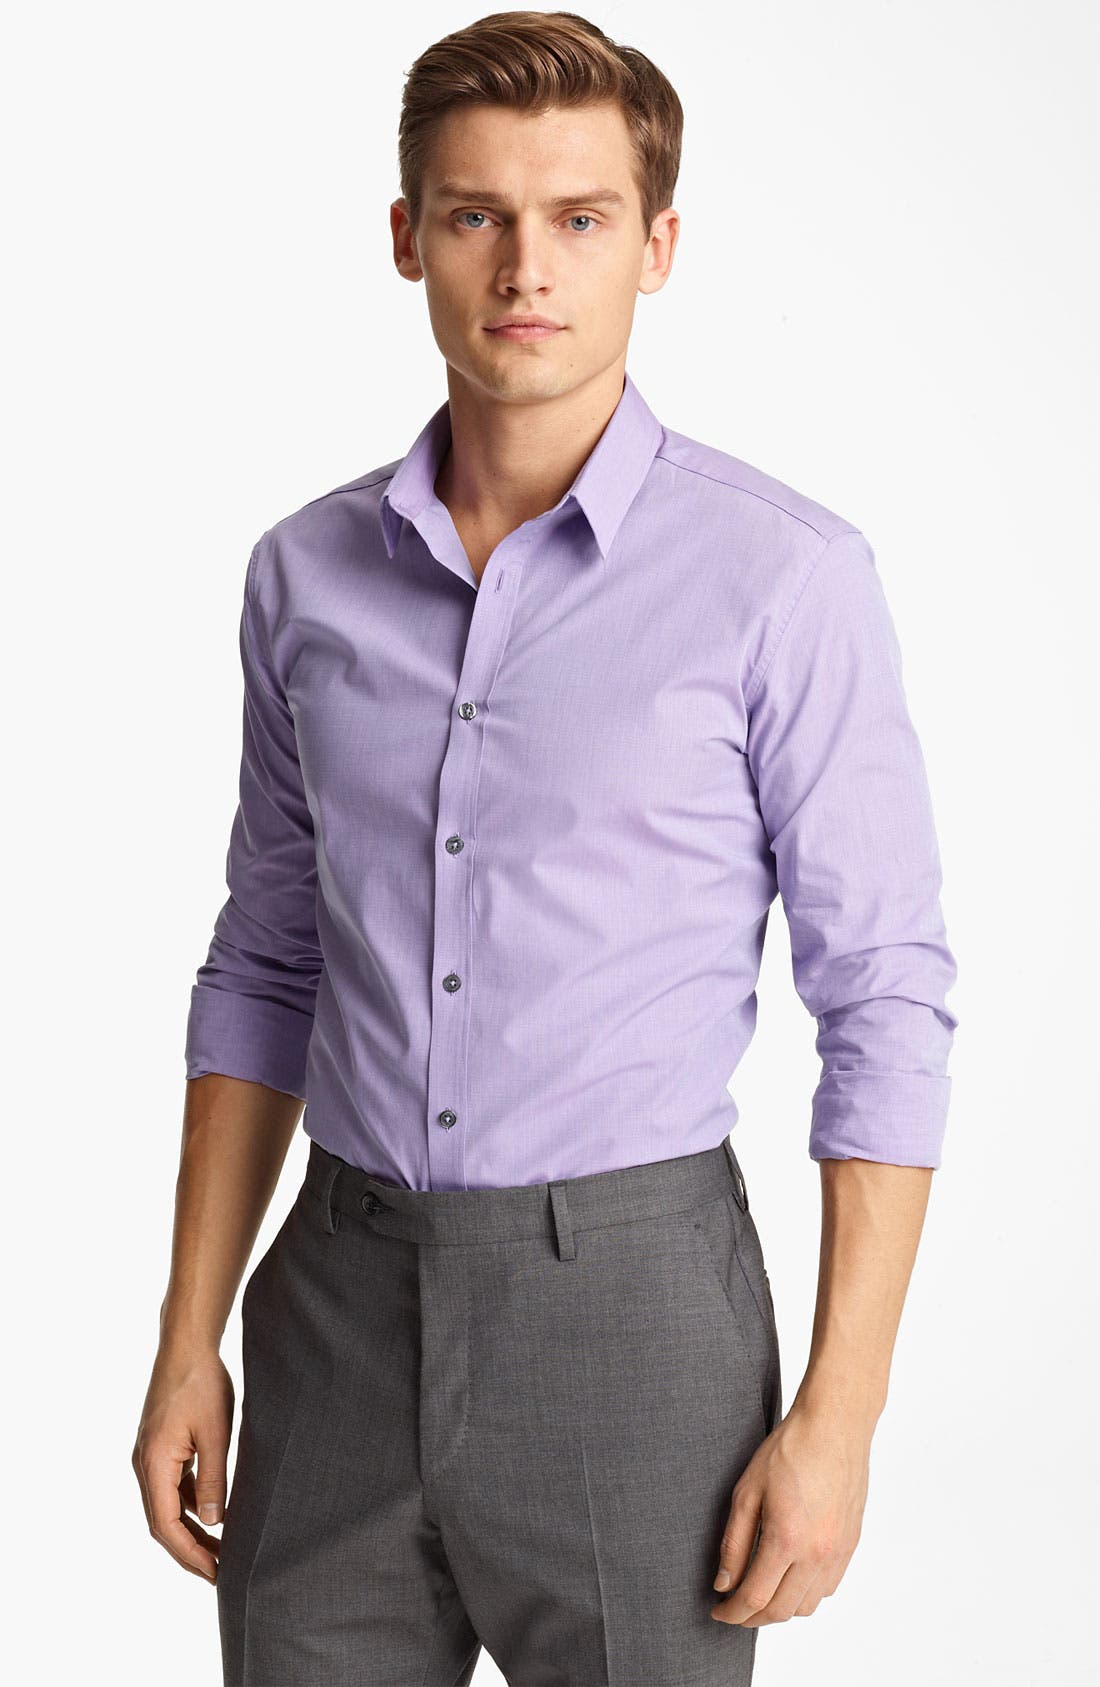 Alternate Image 1 Selected - PS Paul Smith Slim Fit Dress Shirt